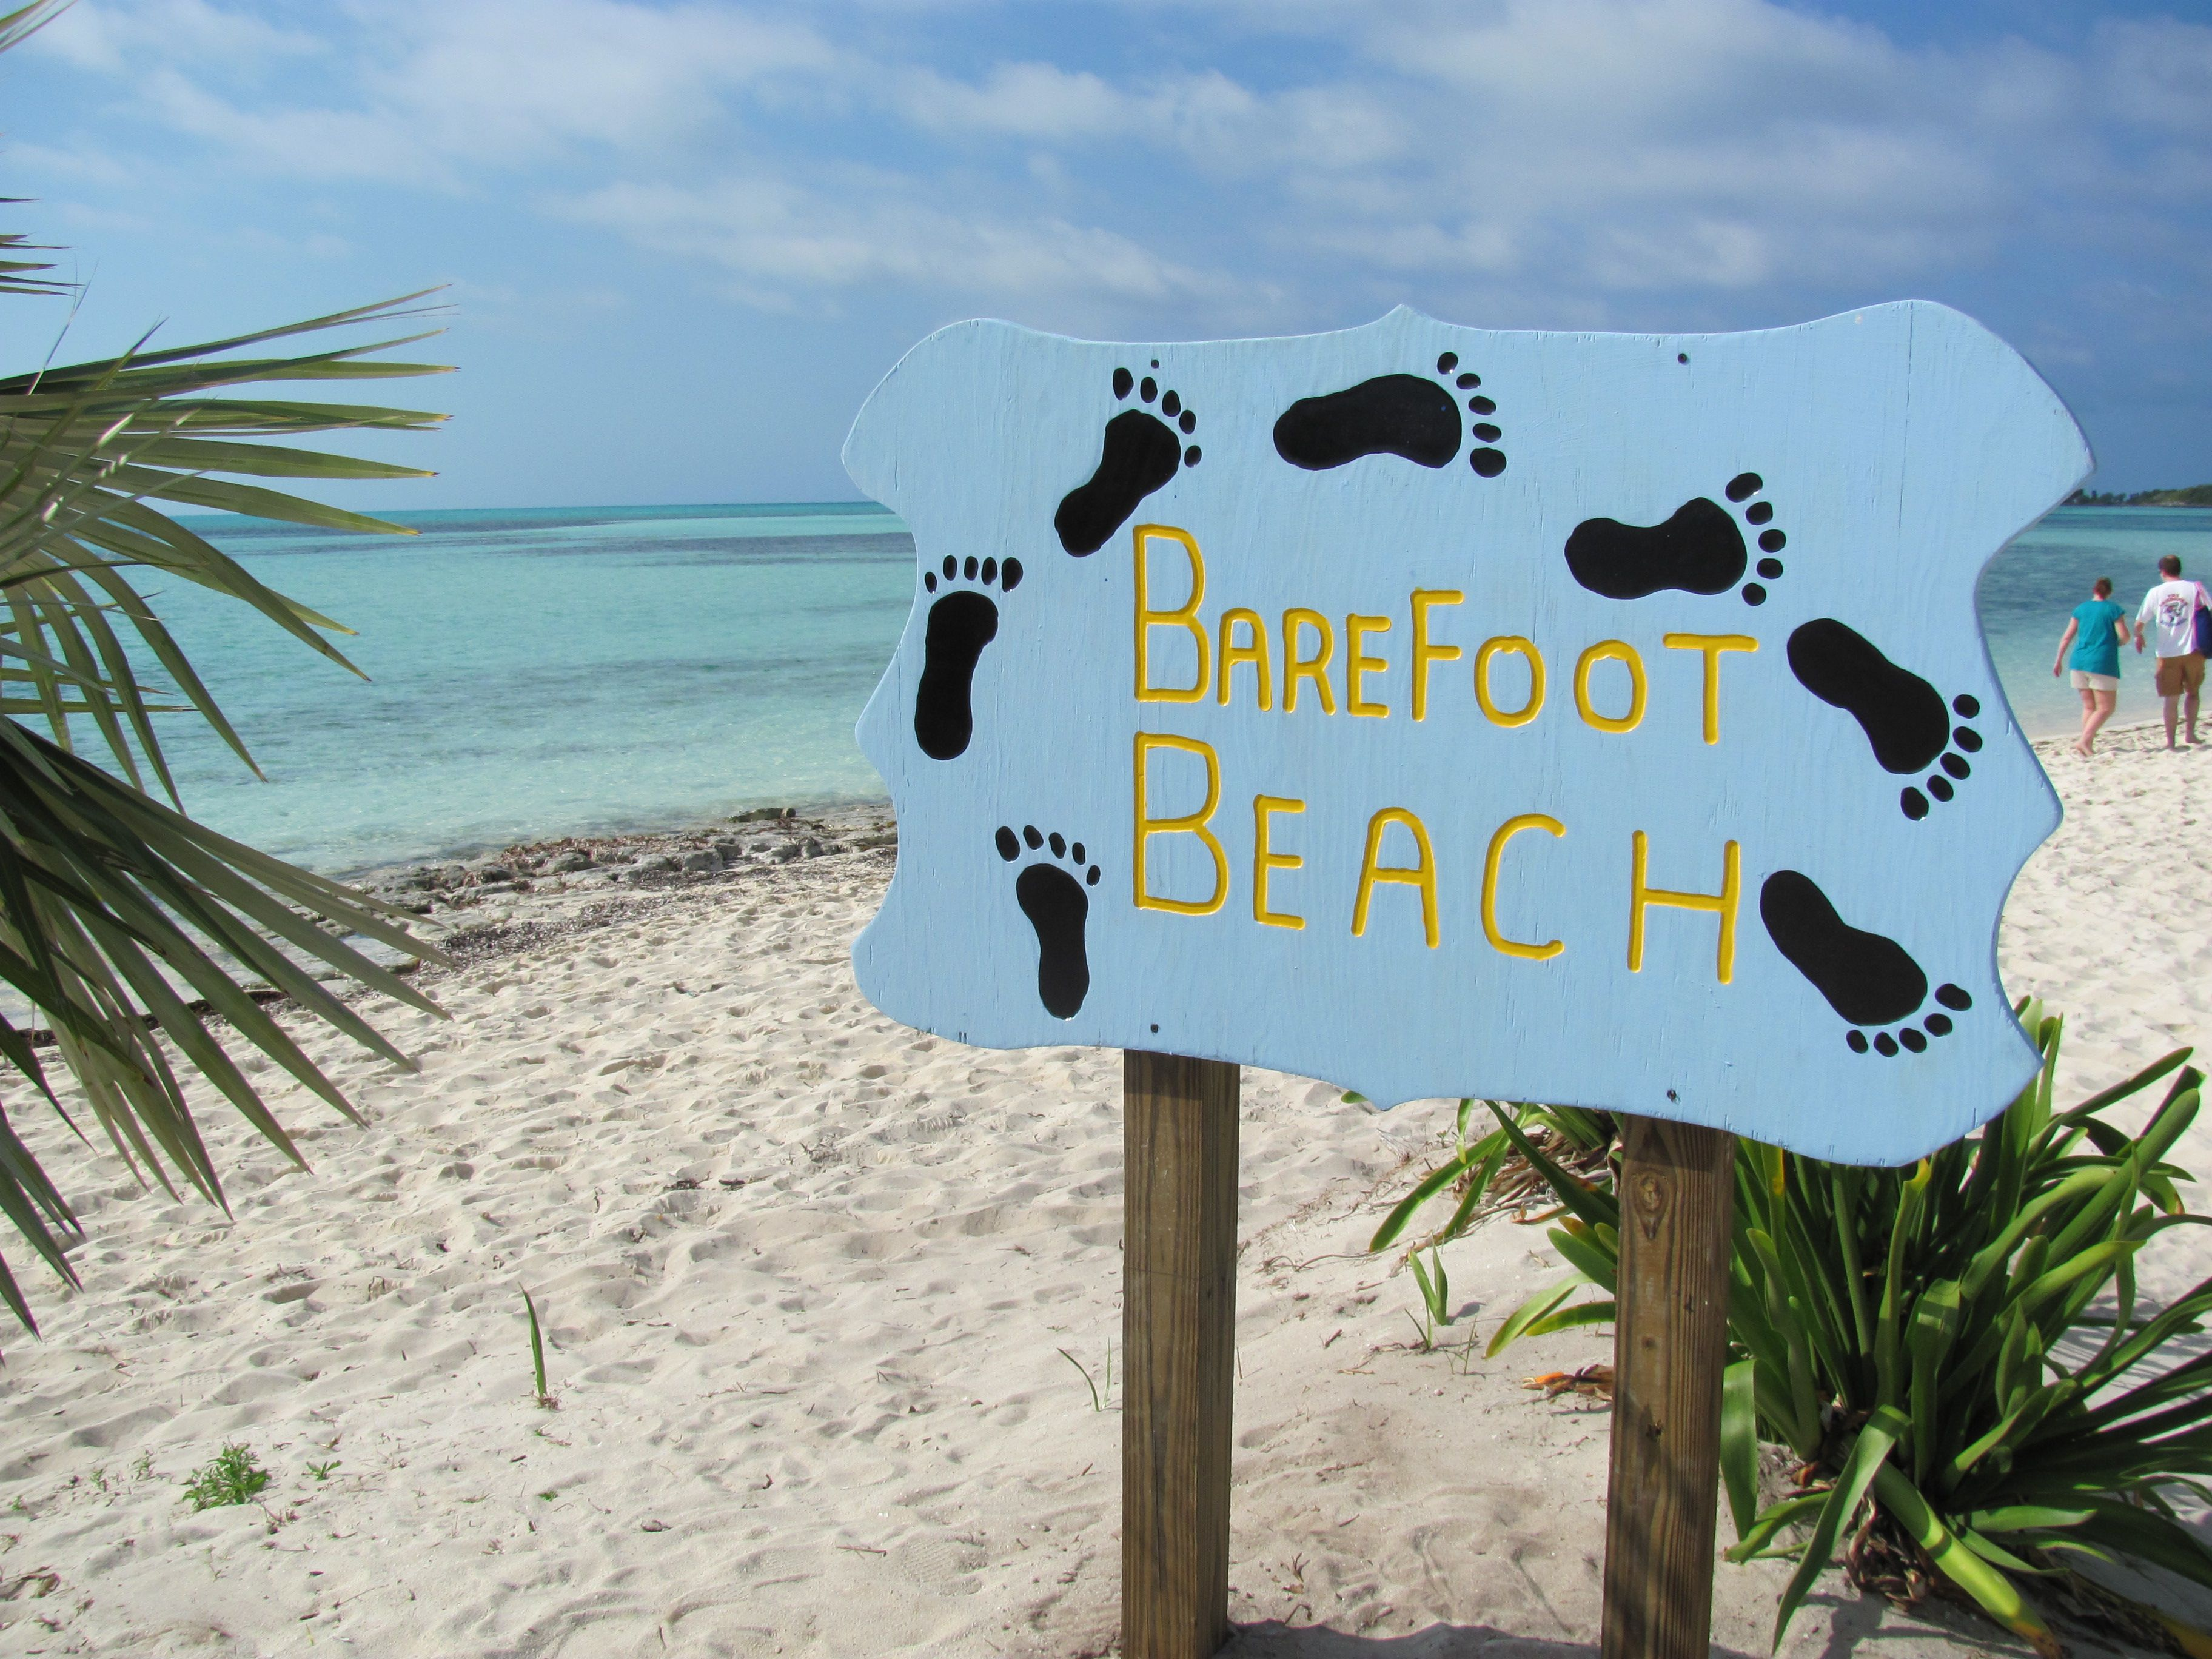 Barefoot Beach - Coco Cay Vacation Lc